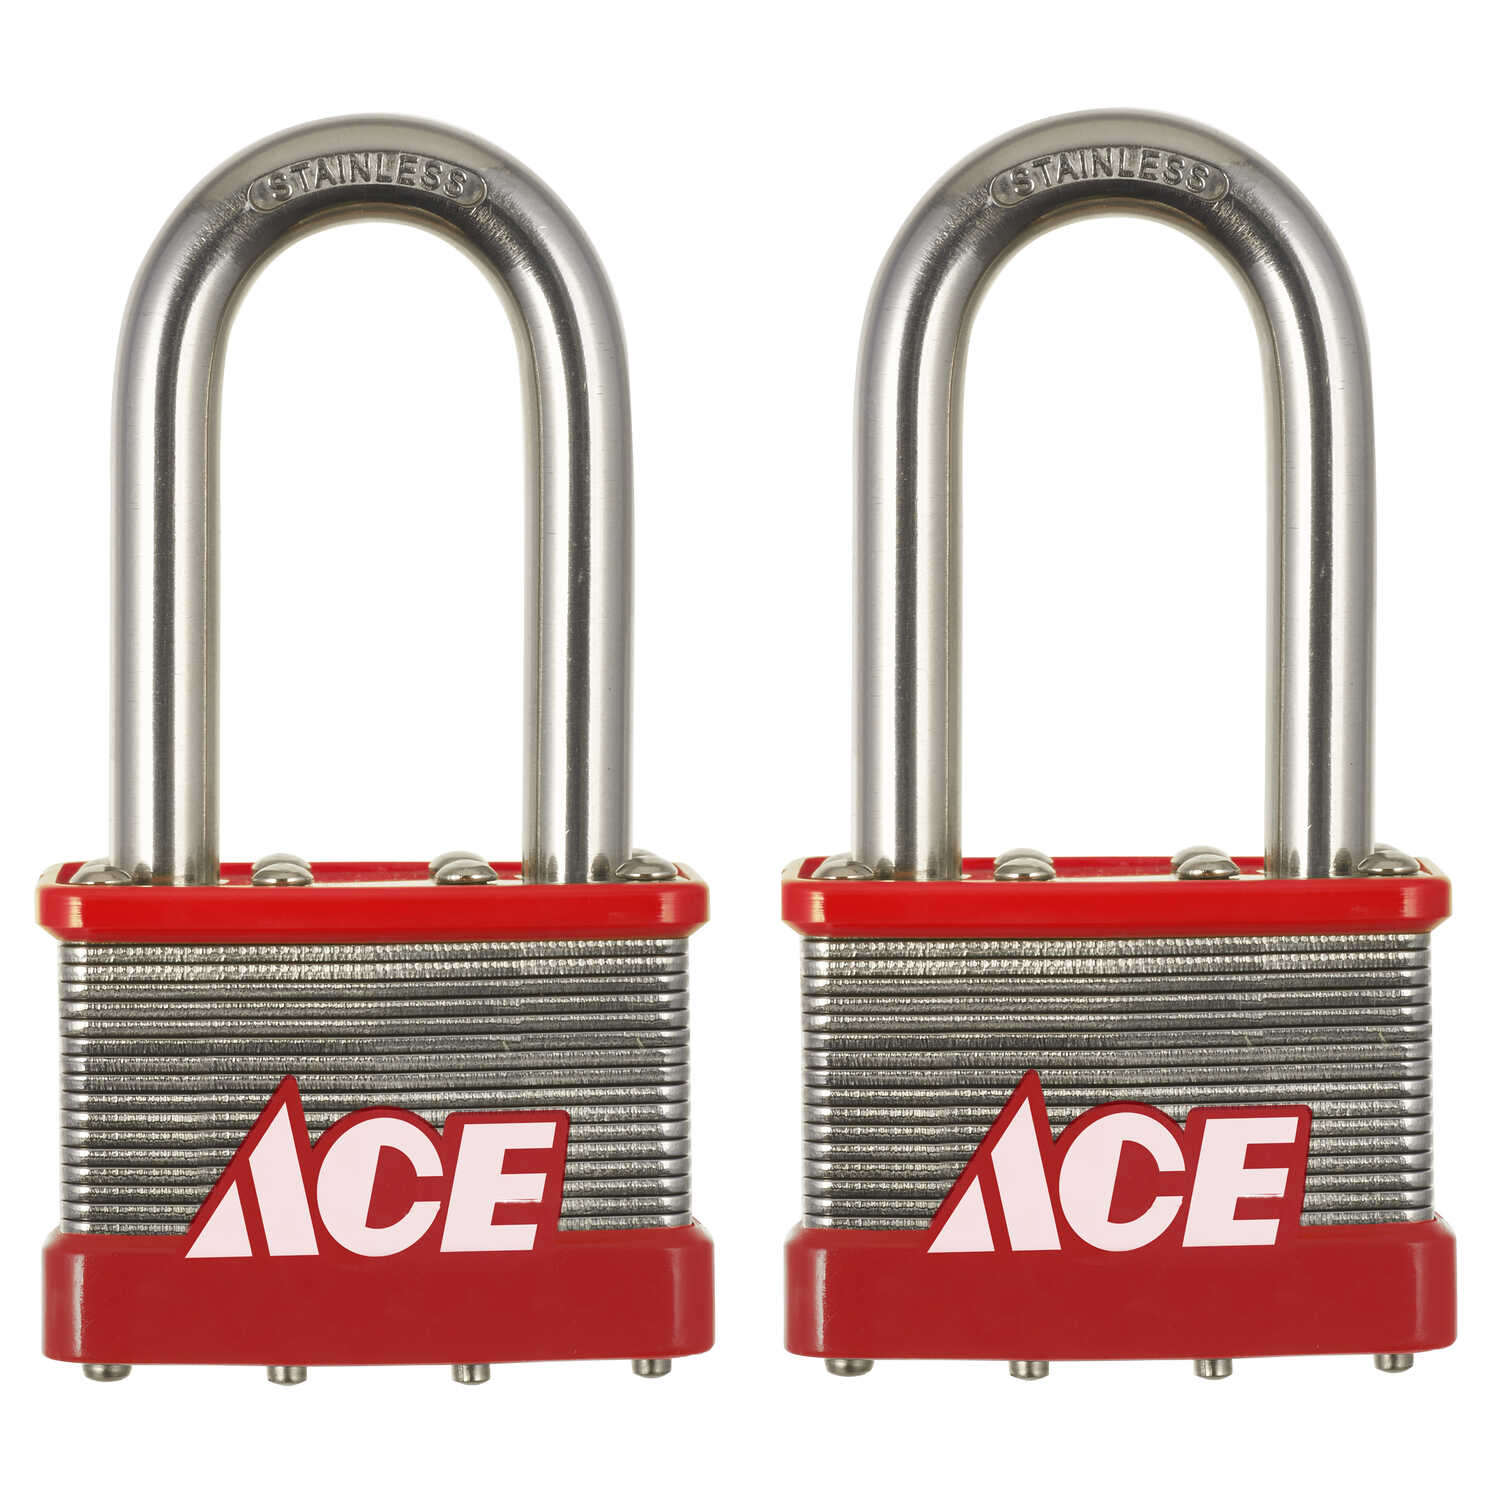 Ace  1.5 in. H x 2 in. W Stainless Steel  4-Pin Cylinder  Padlock  2 pk Keyed Alike